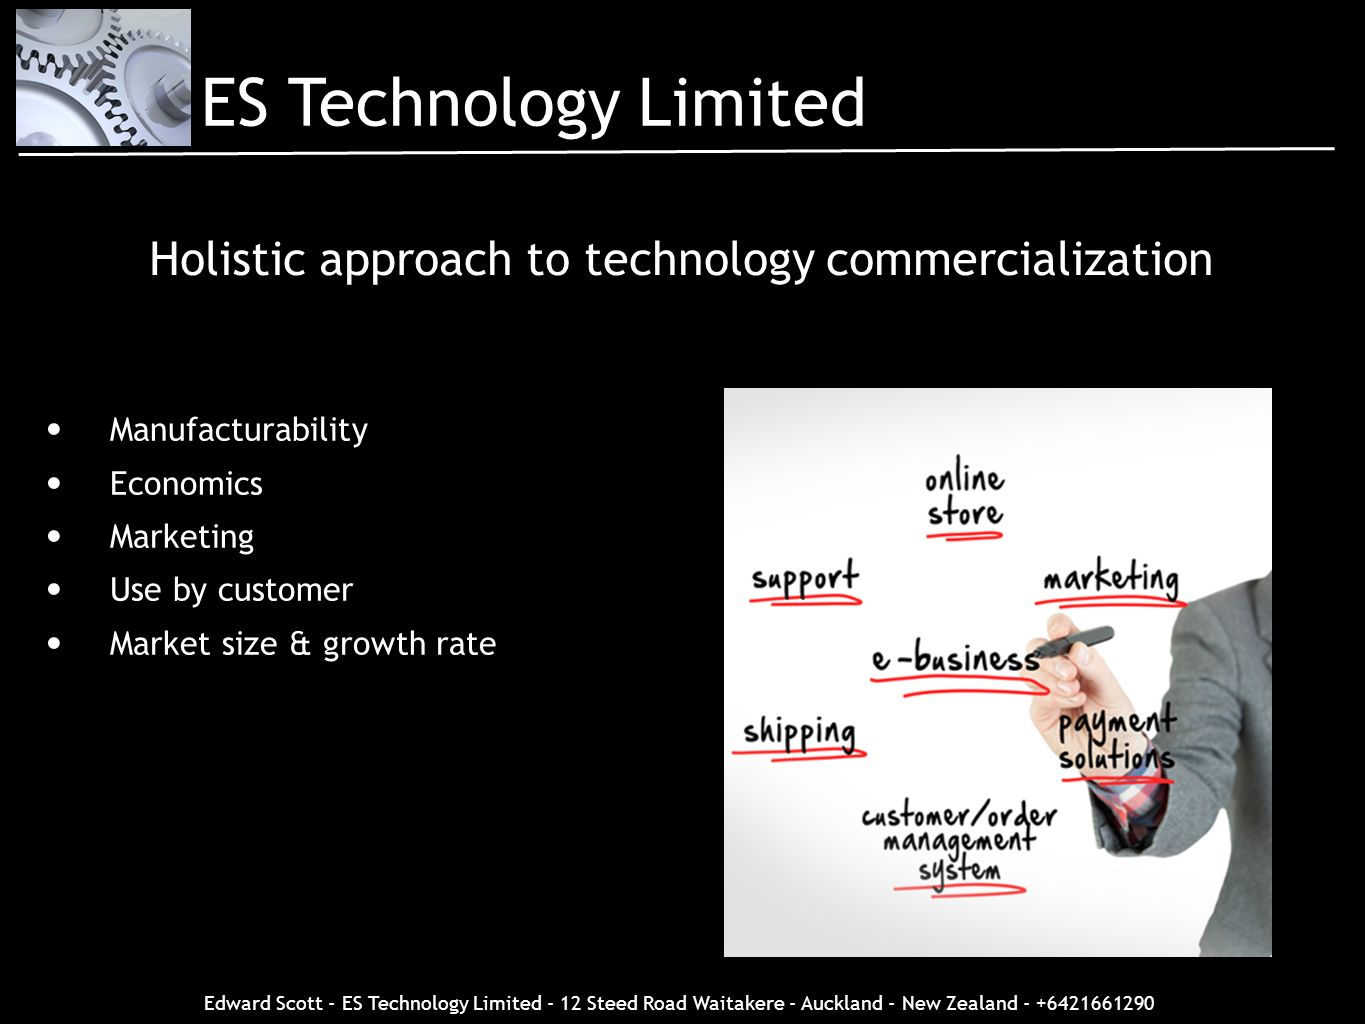 Edward Scott - ES Technology Limited - 12 Steed Road Waitakere - Auckland - New Zealand - +6421661290 Holistic approach to technology commercializatio